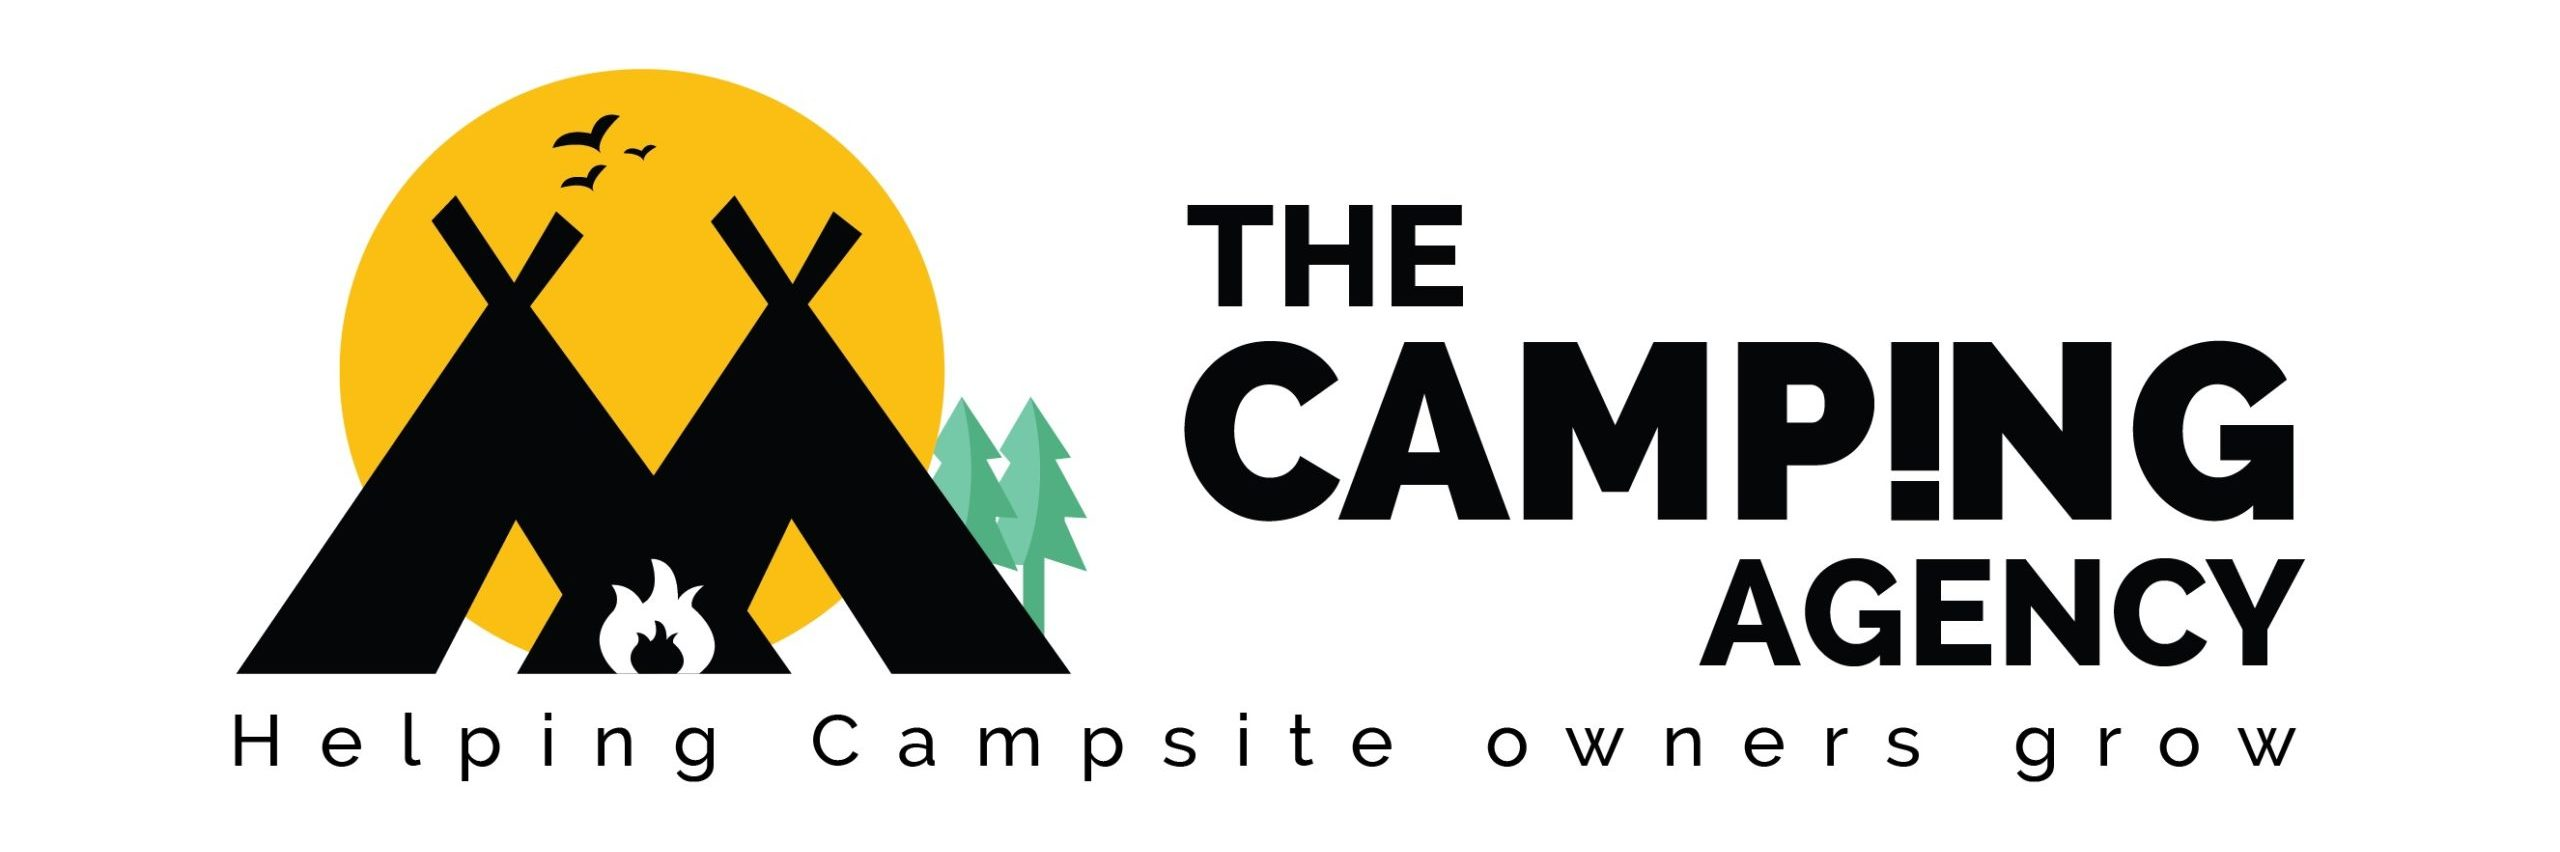 The Camping Agency